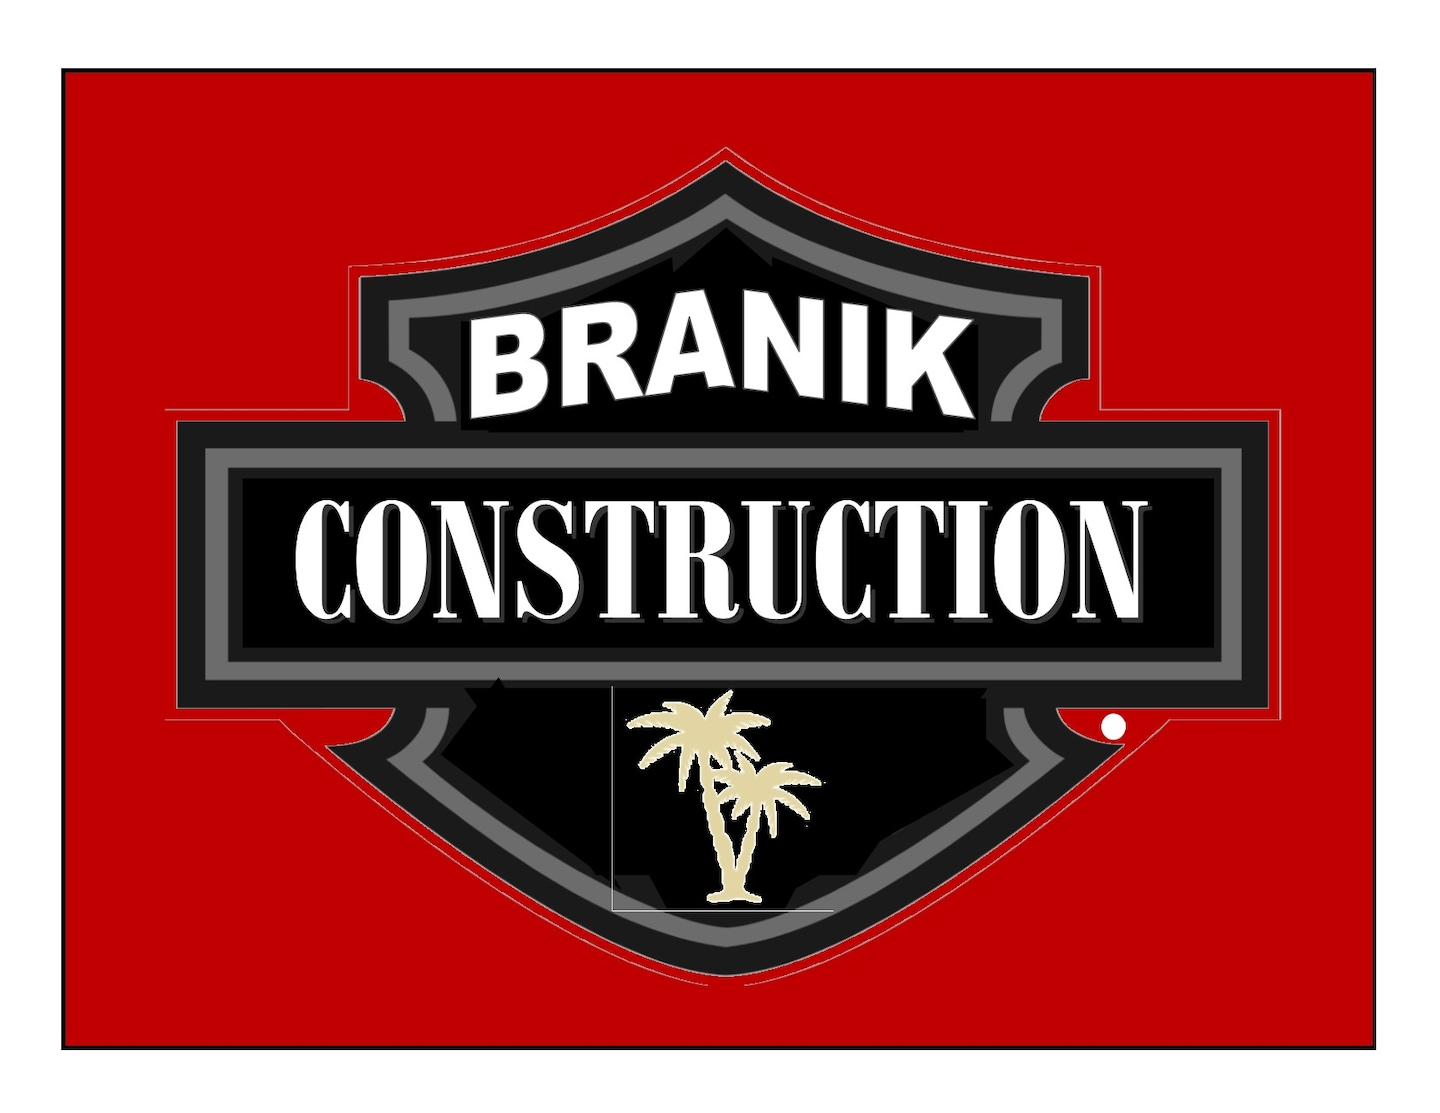 Branik Construction